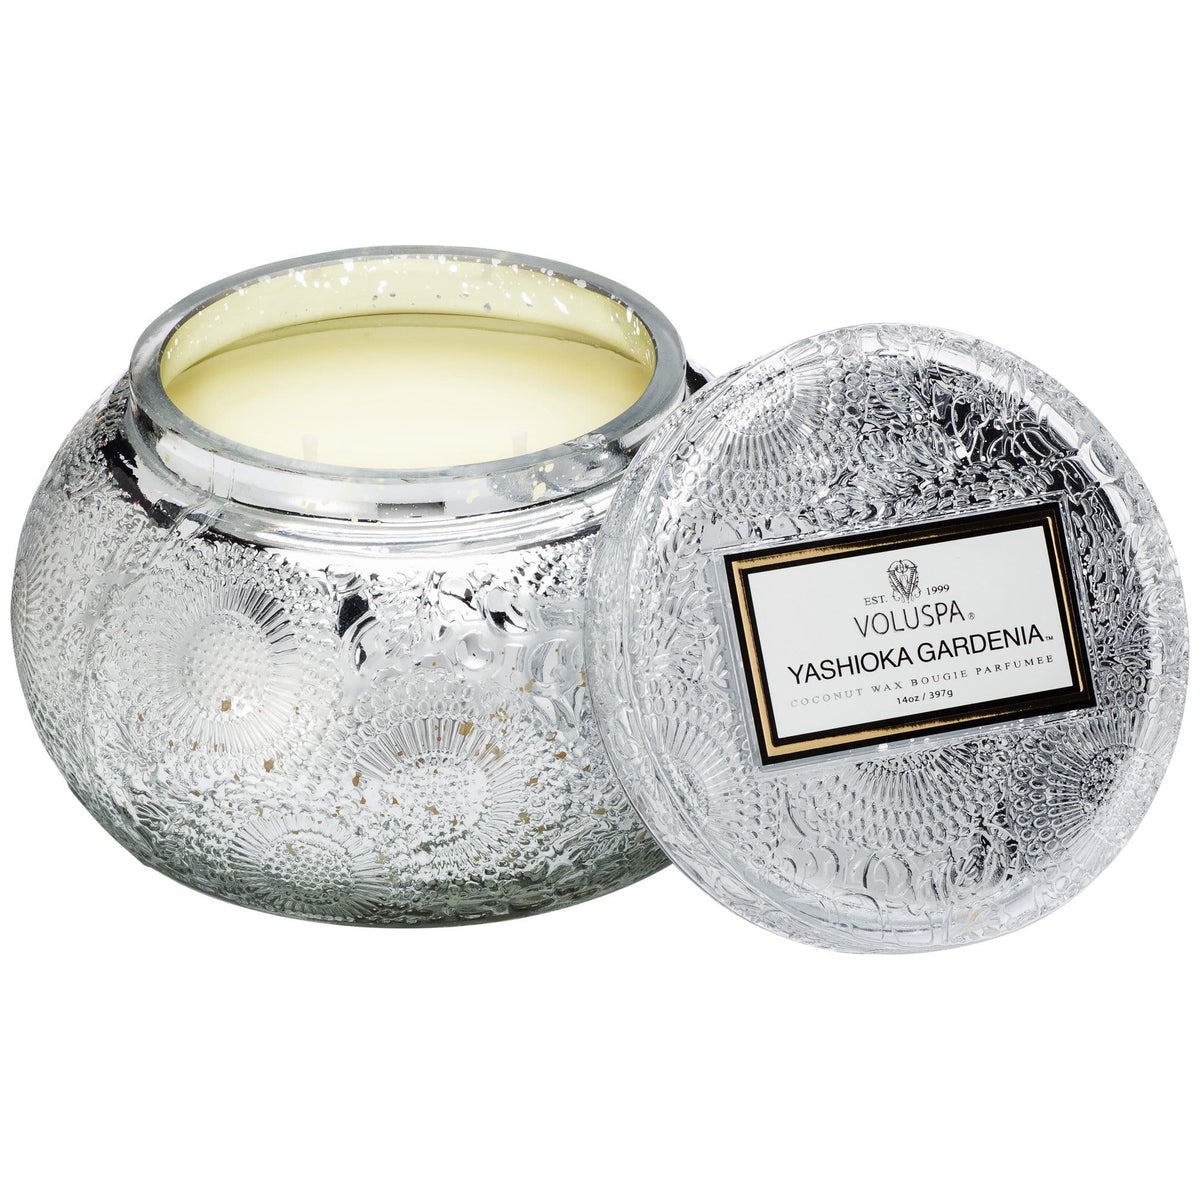 Yashioka Gardenia Embossed Glass Chawan Bowel Candle Voluspa Candles & Home Fragrance